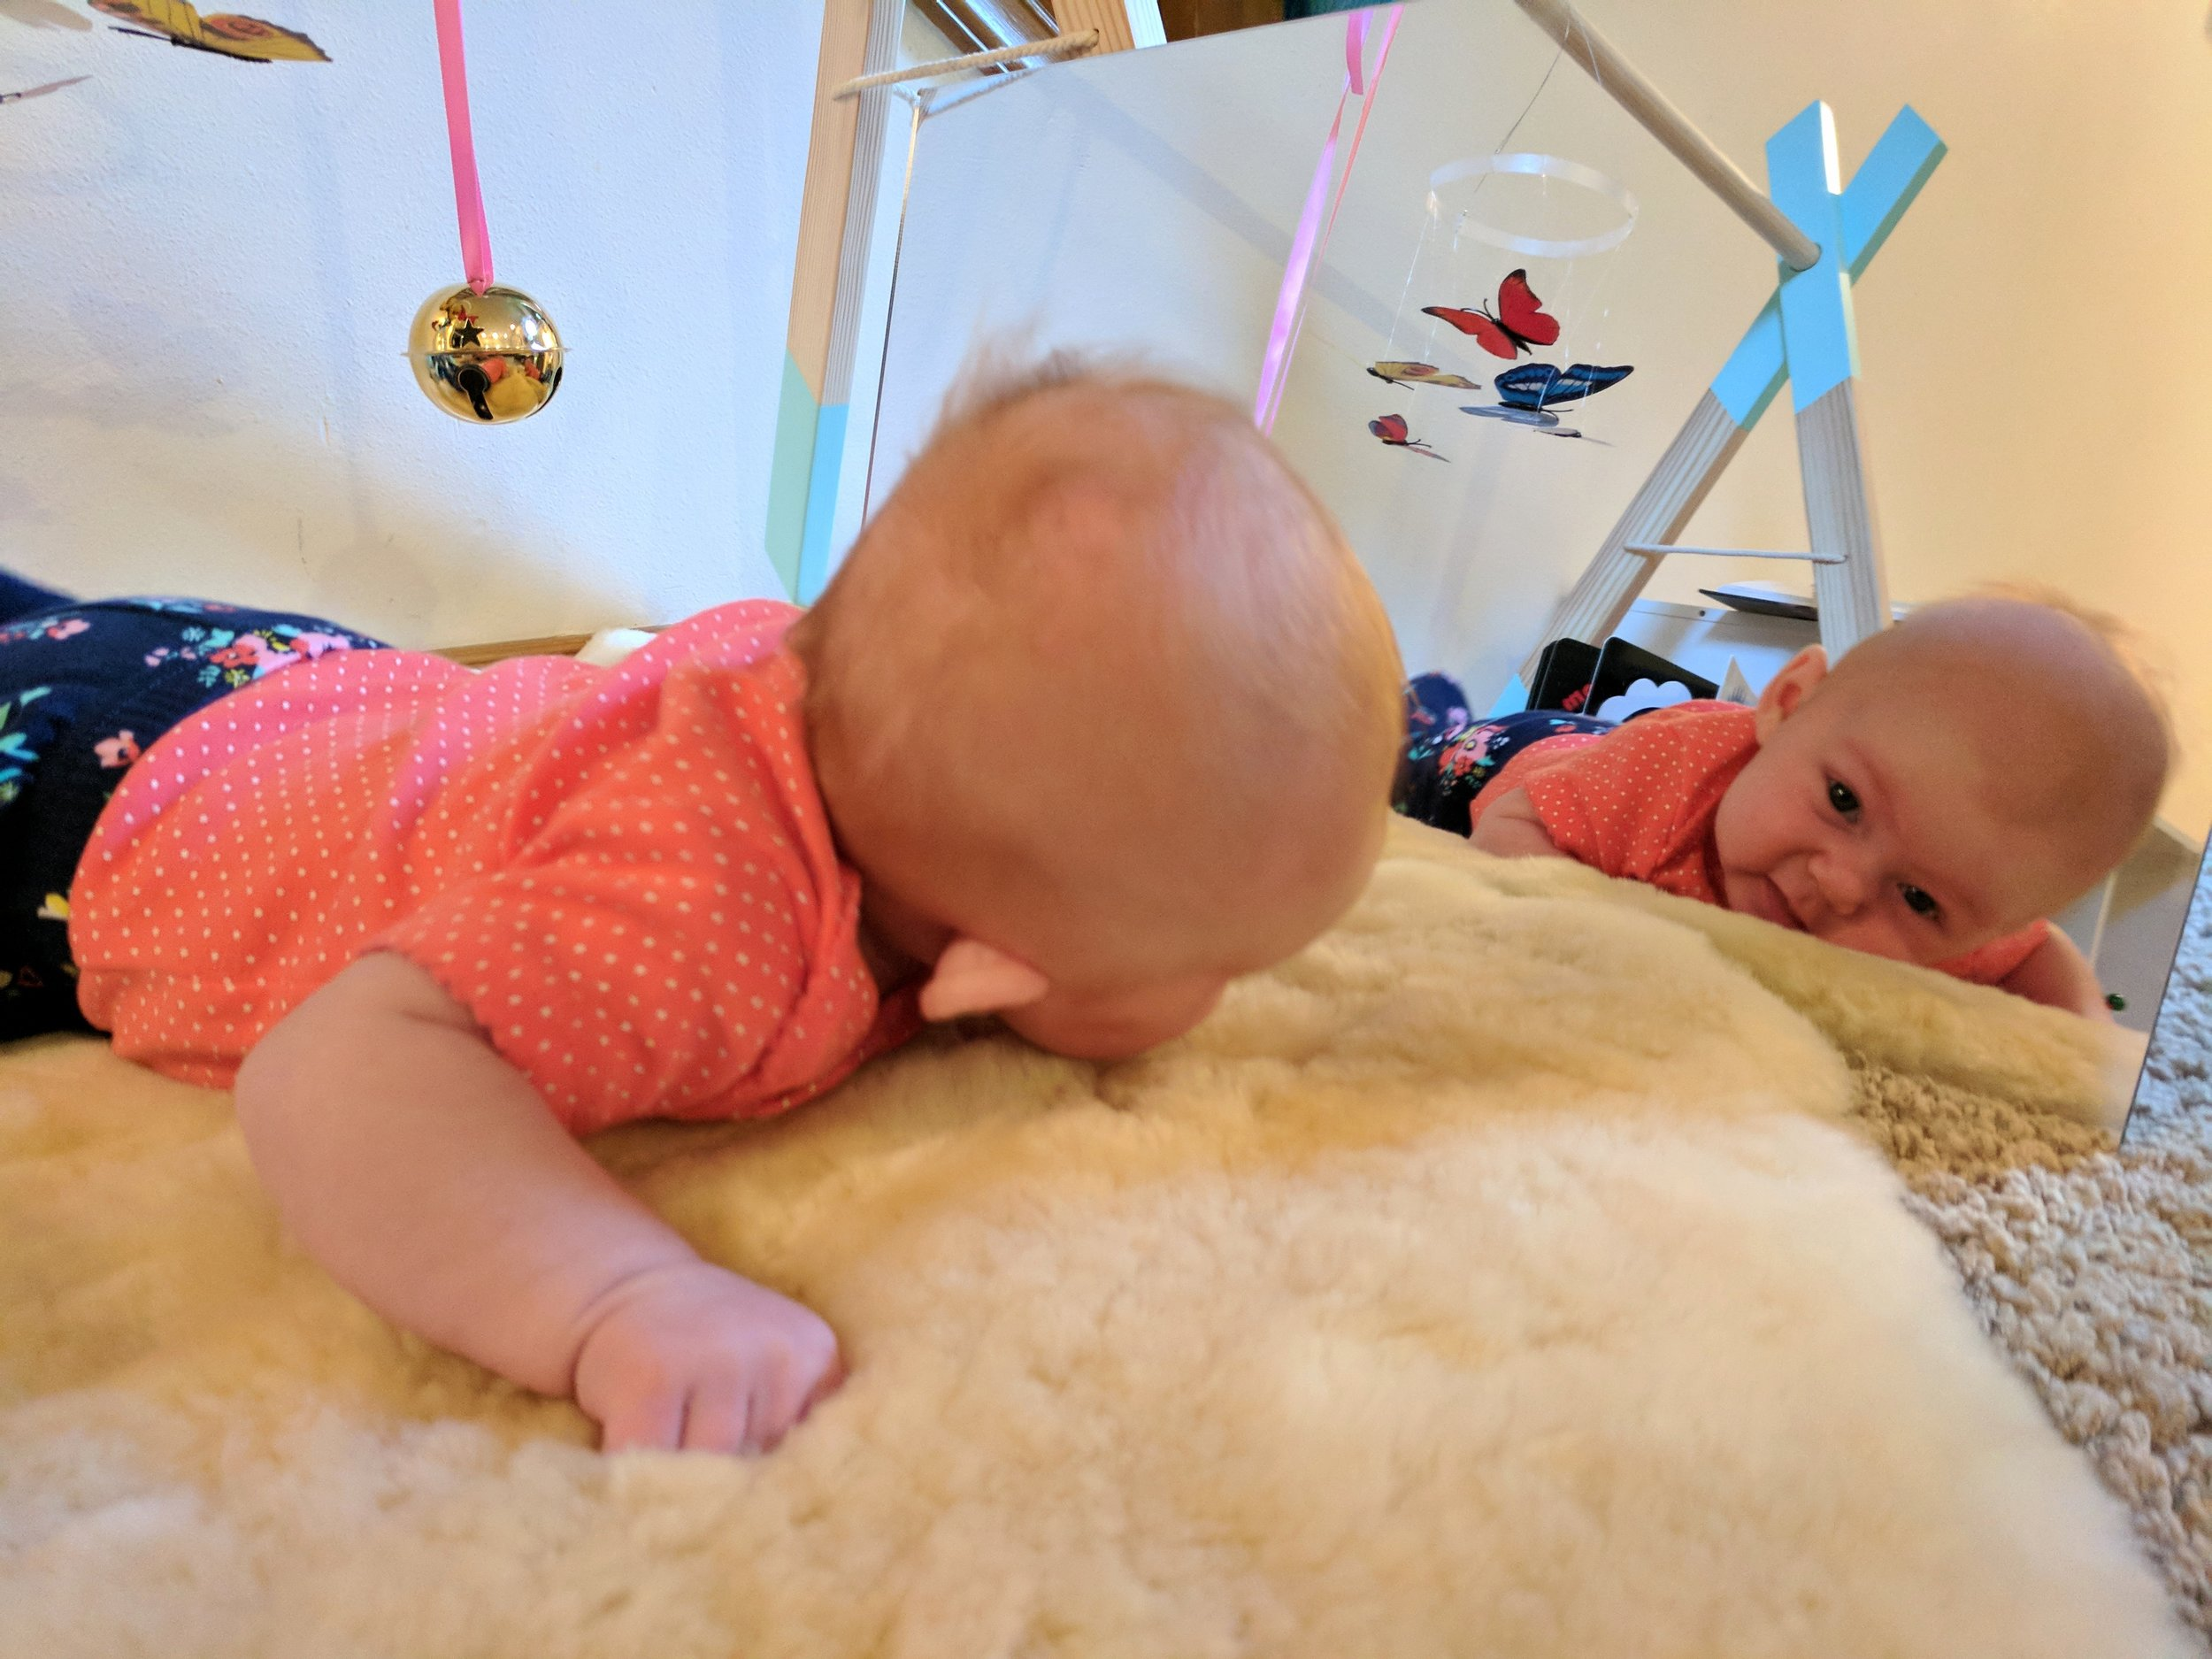 Baby-Led Tummy Time - Montessori in Real Life